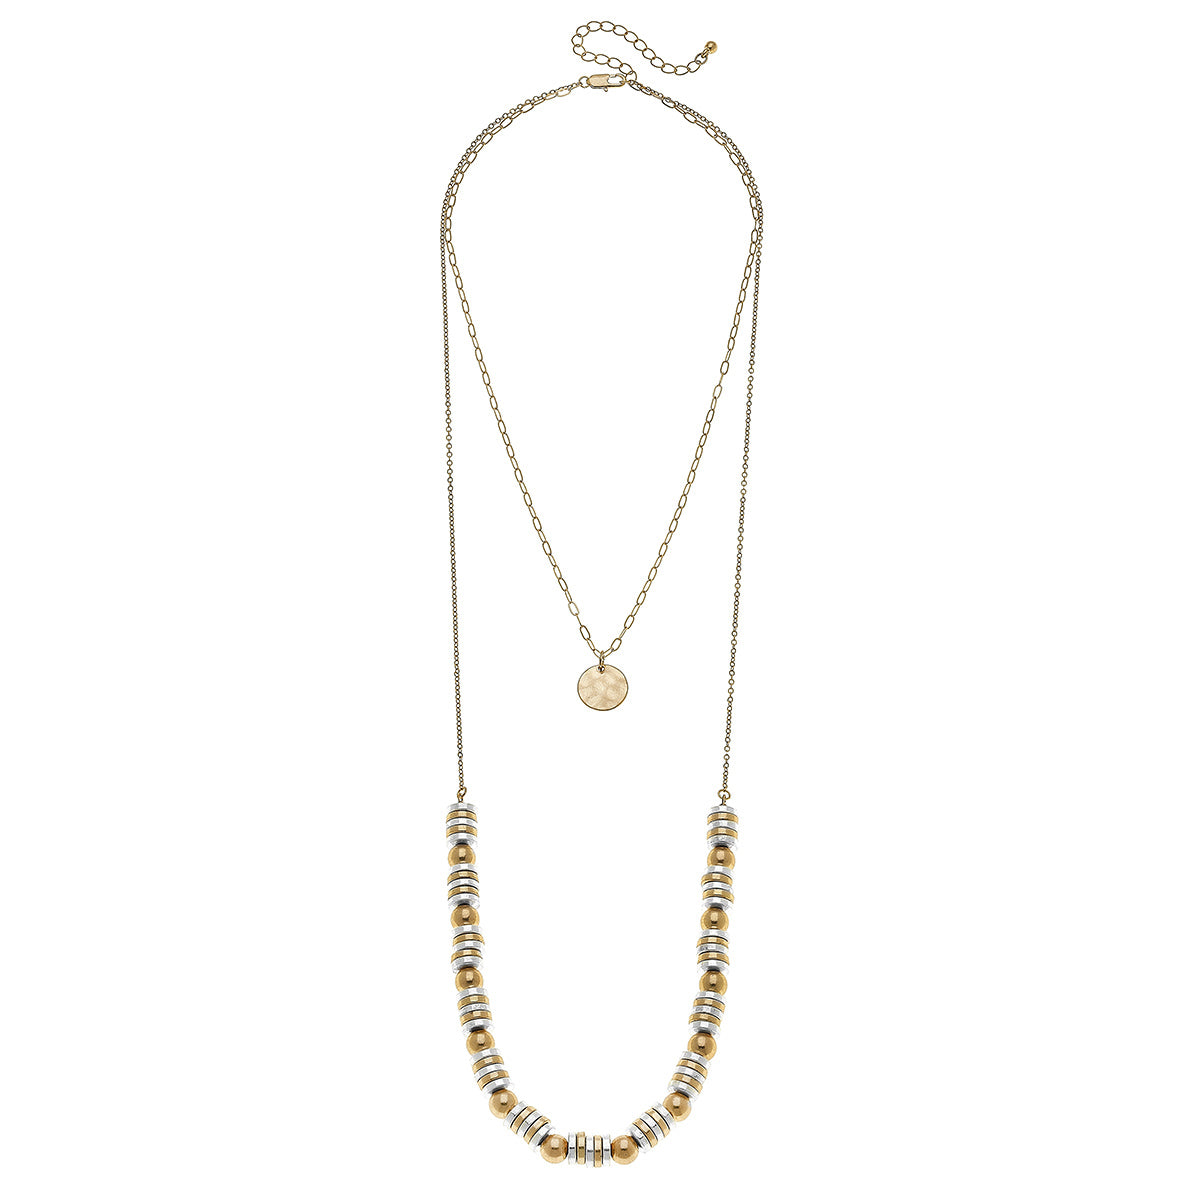 Carmen Layered Beaded Metal Necklace in Two-Tone